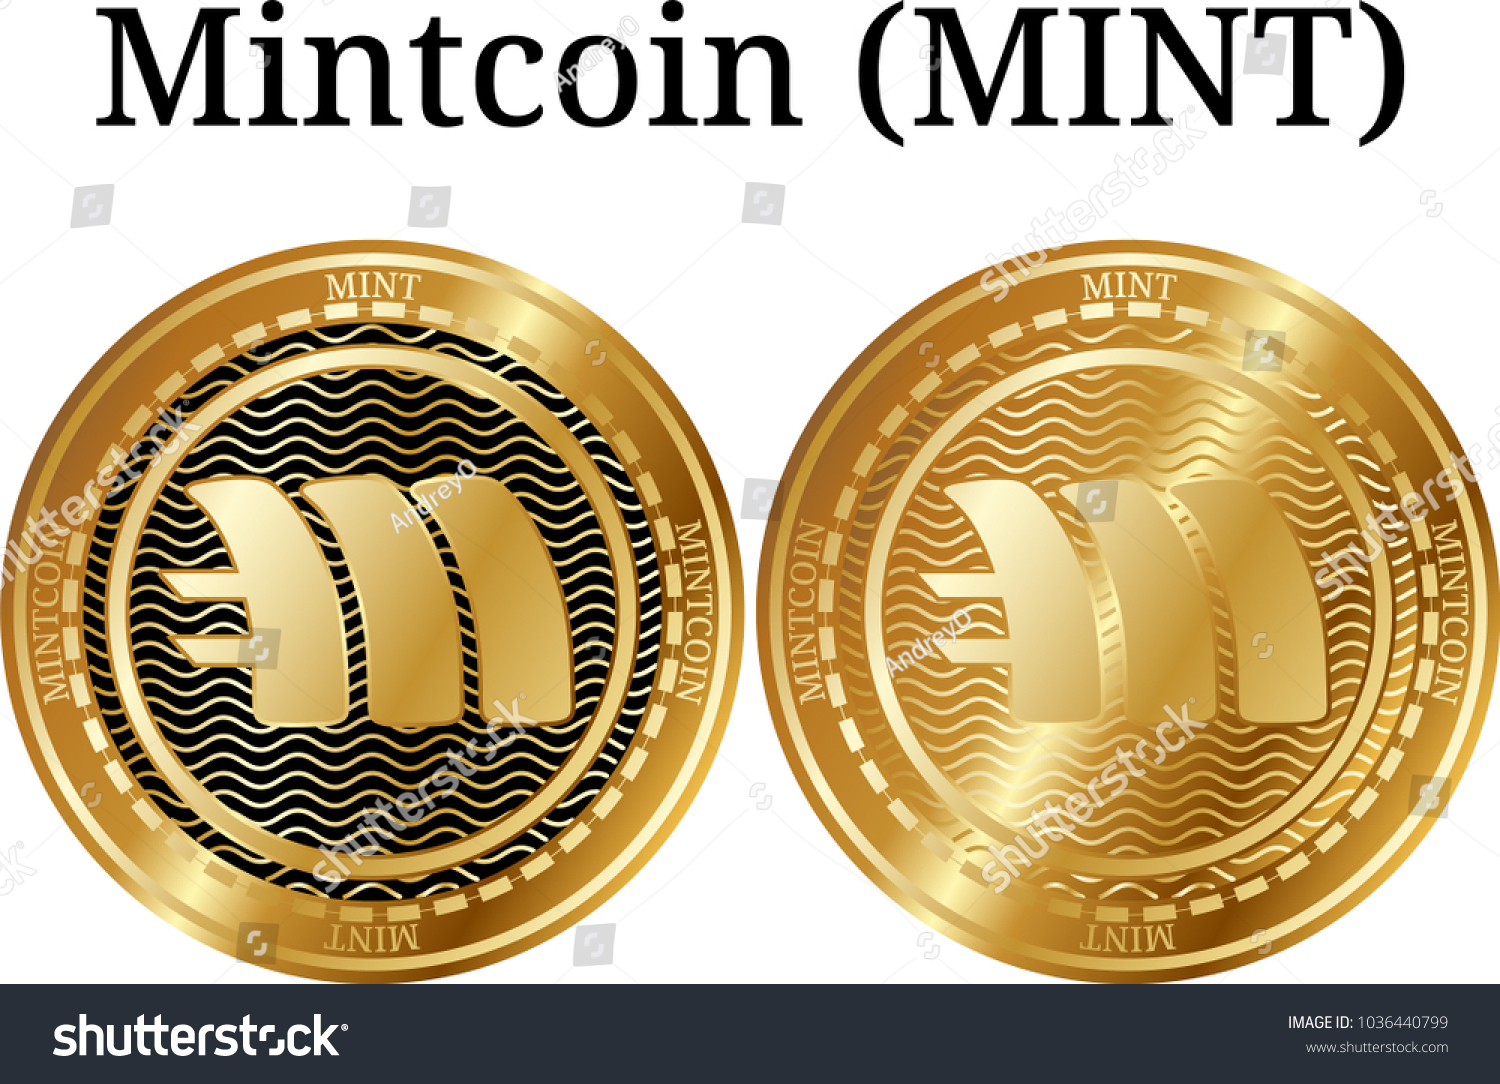 Mint coin crypto currency stocks best sports spread betting sites